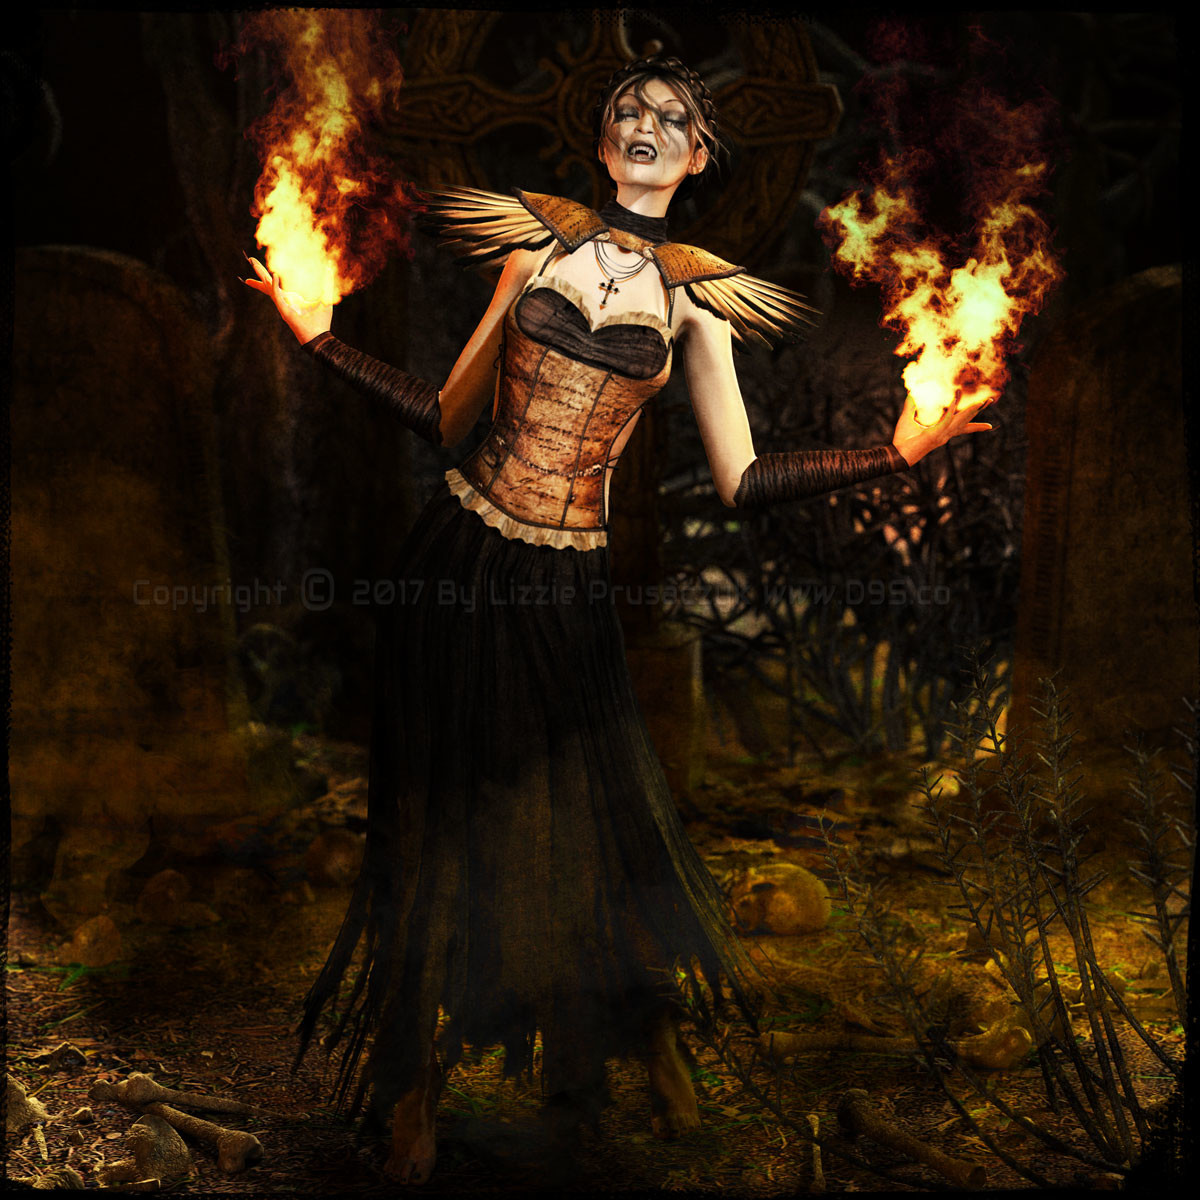 The vampiress uses her dark magic to summon the dead in the old gothic cemetery.